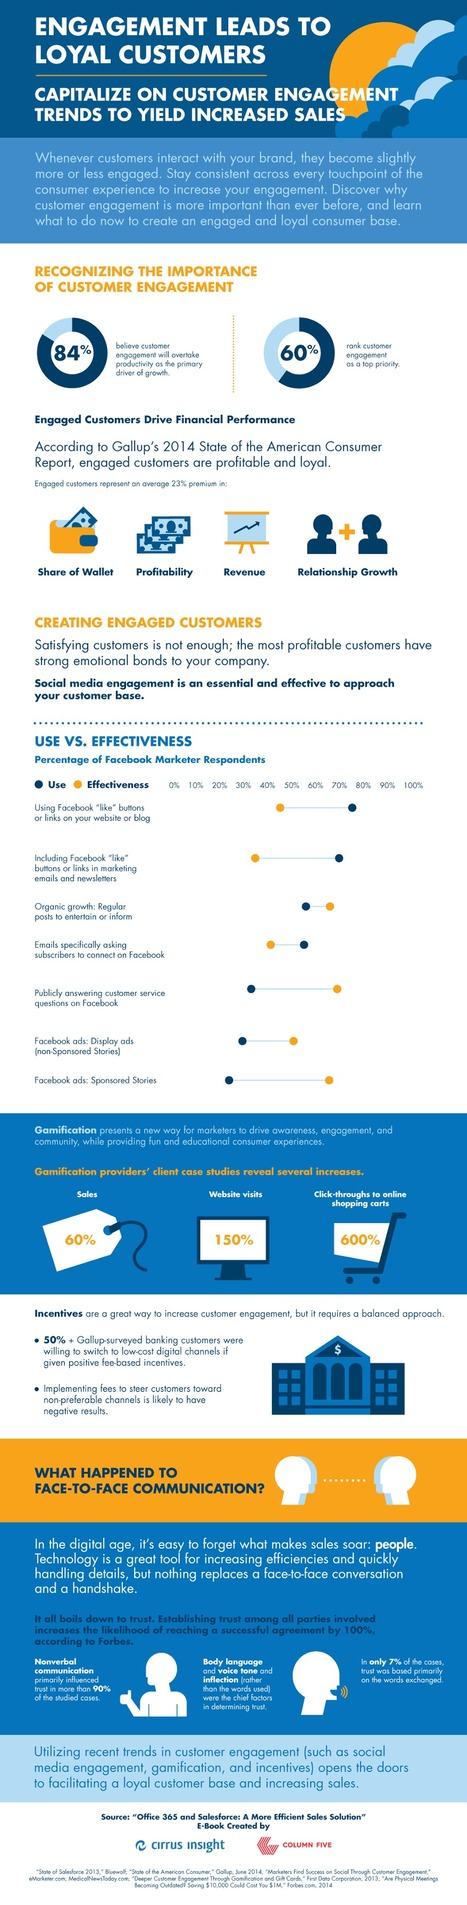 Engagement Leads to Loyal Customers [INFOGRAPHIC]   MarketingHits   Scoop.it